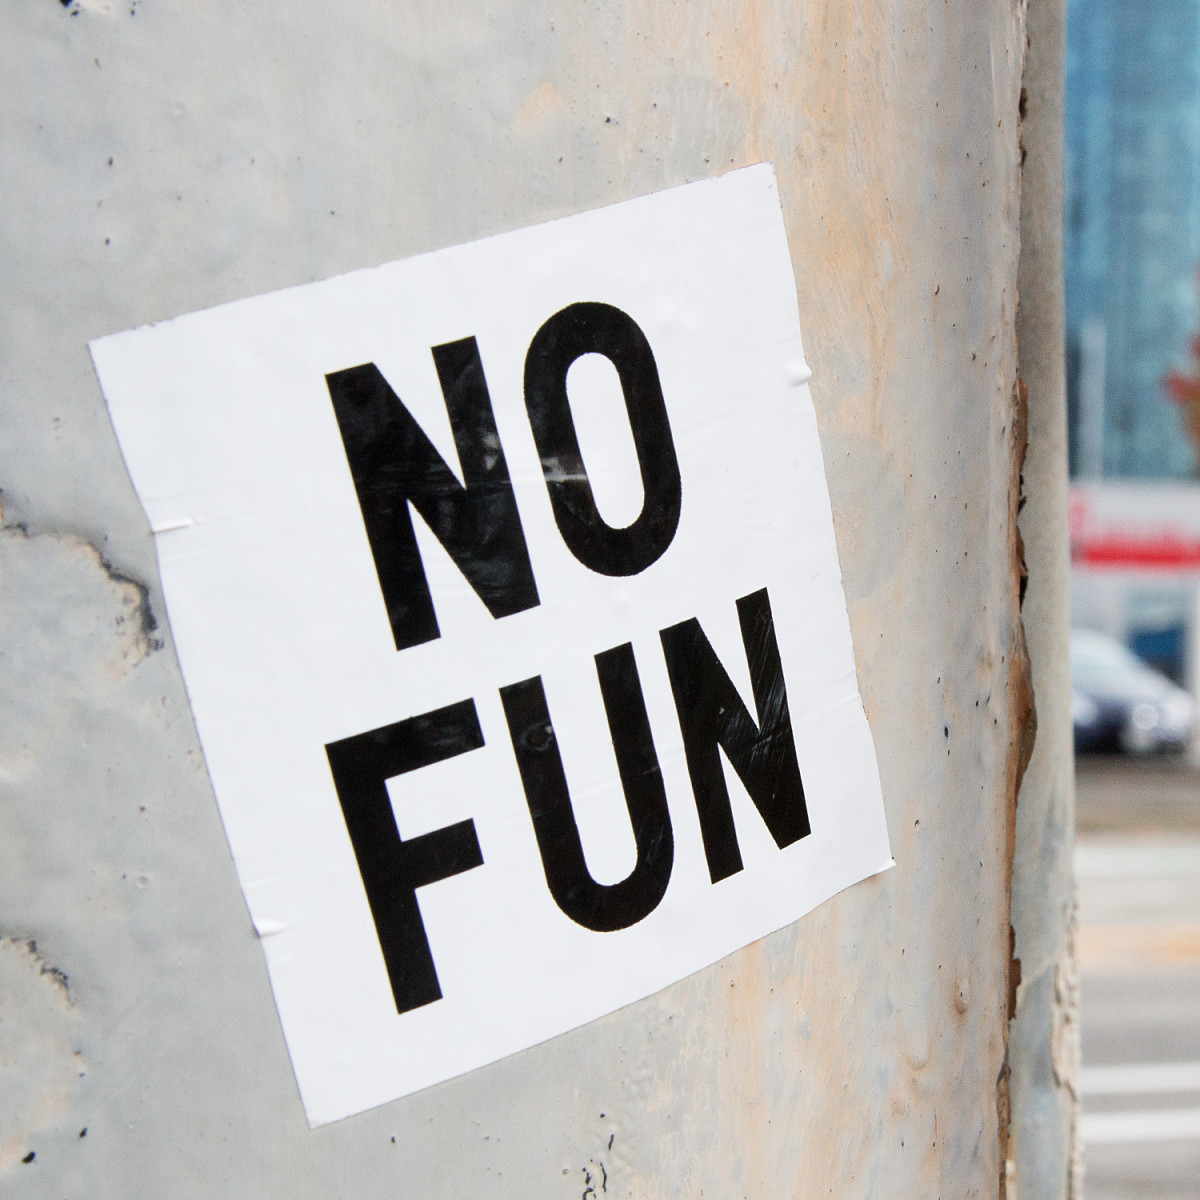 No fun.  Is this an honest description or a command?